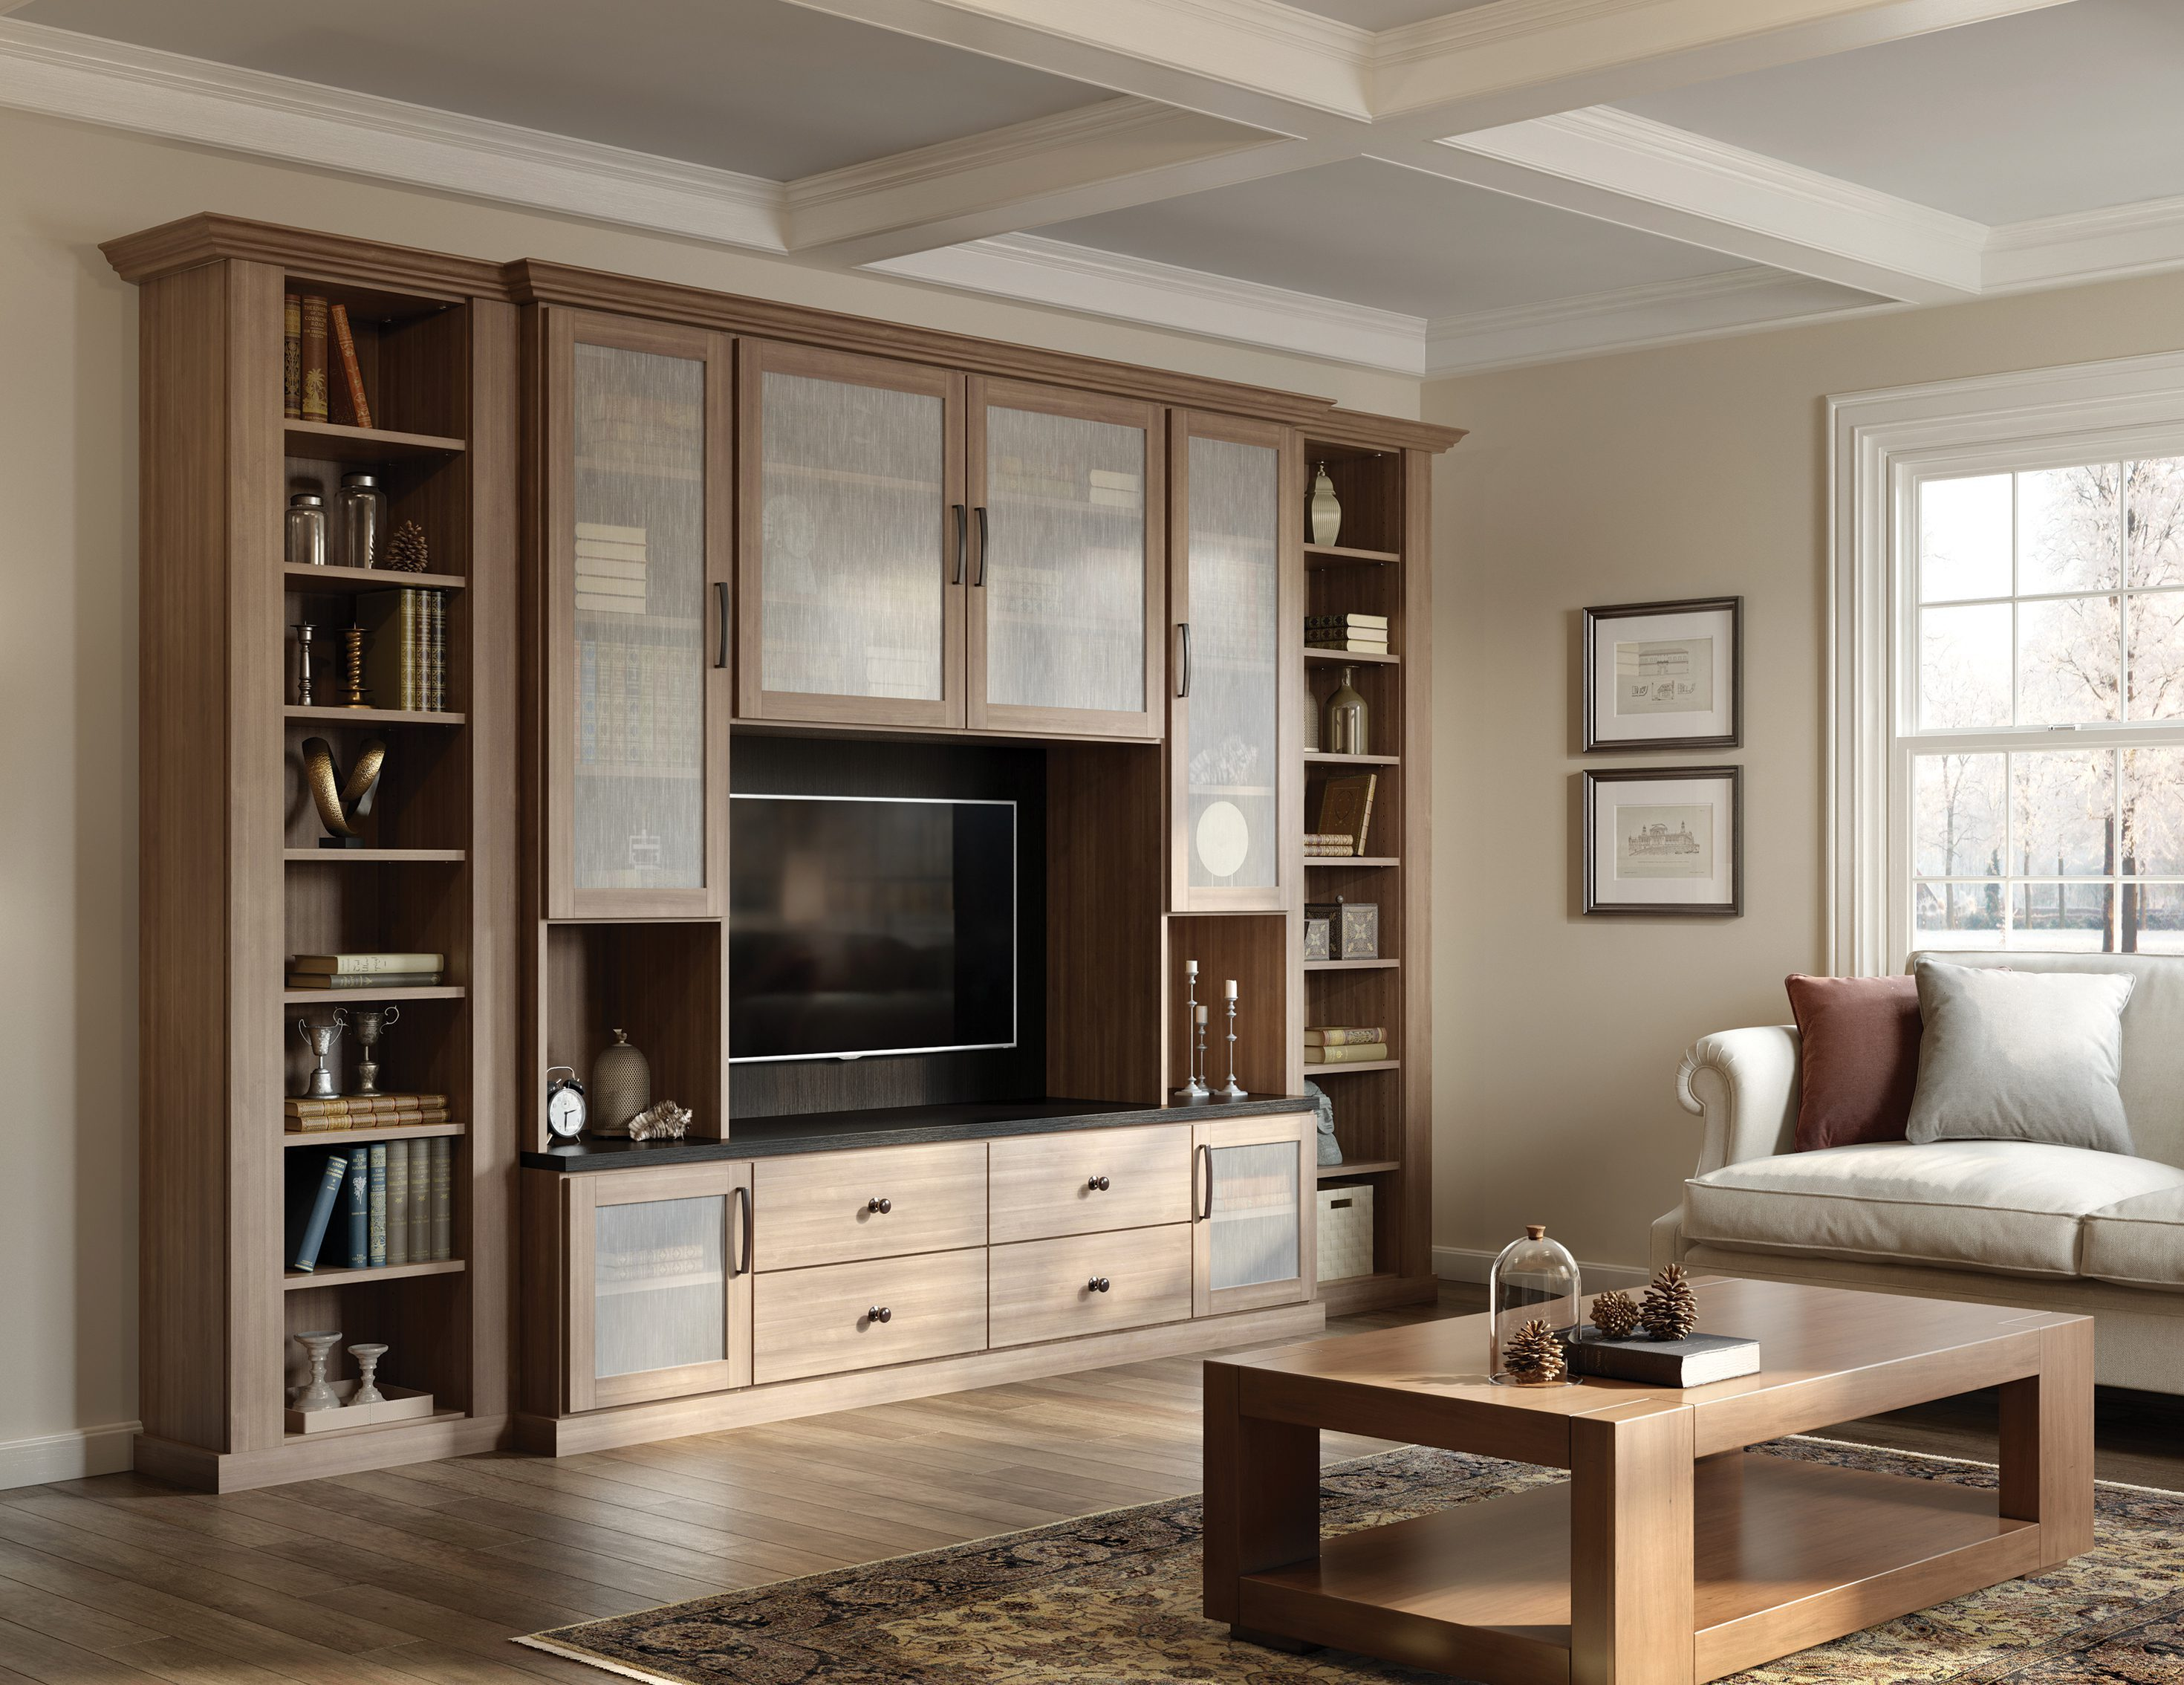 Built-in Entertainment Centers & Media Cabinets | California